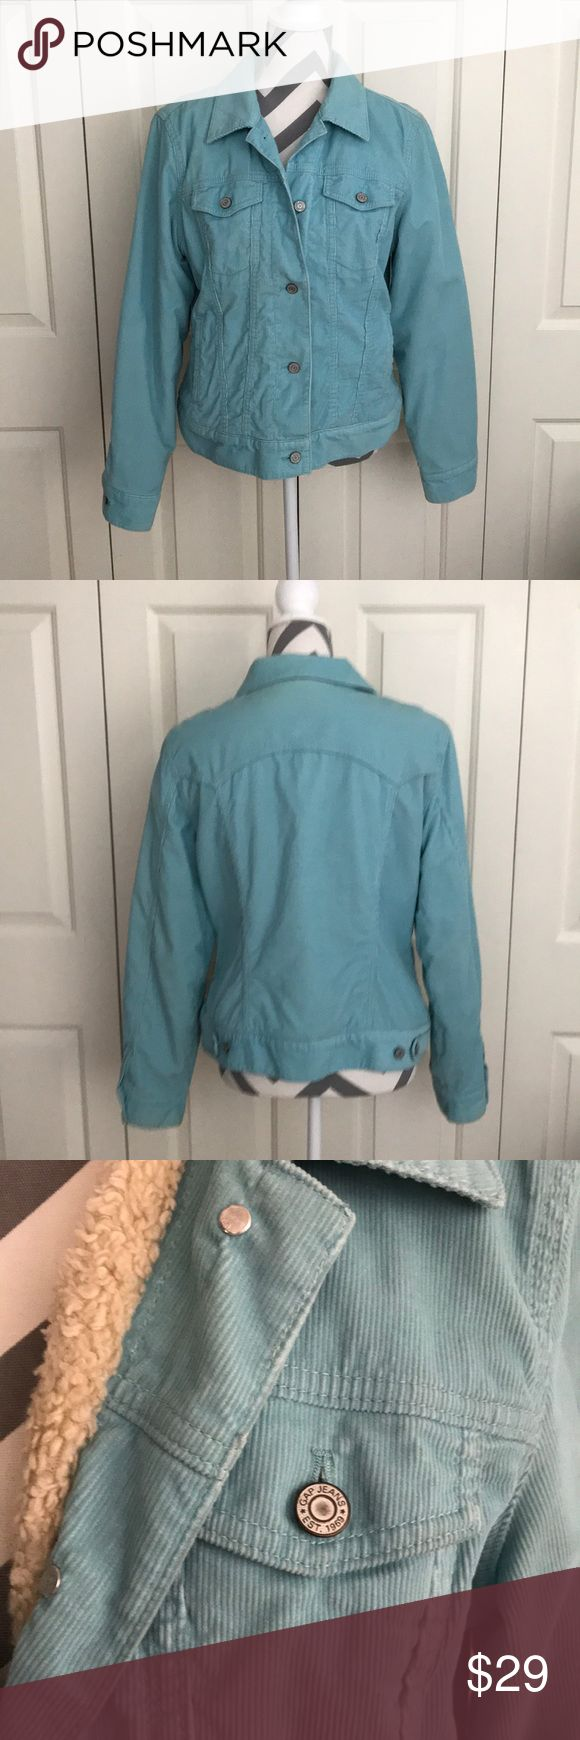 Gap jacket Gap jacket with corduroy outer and warm fuzzy inside lining. Two pockets and 2 upper buttoned pockets. 5 button front and 4 buttons on lower back to adjust. Gently worn from non smoking home. GAP Jackets & Coats Jean Jackets